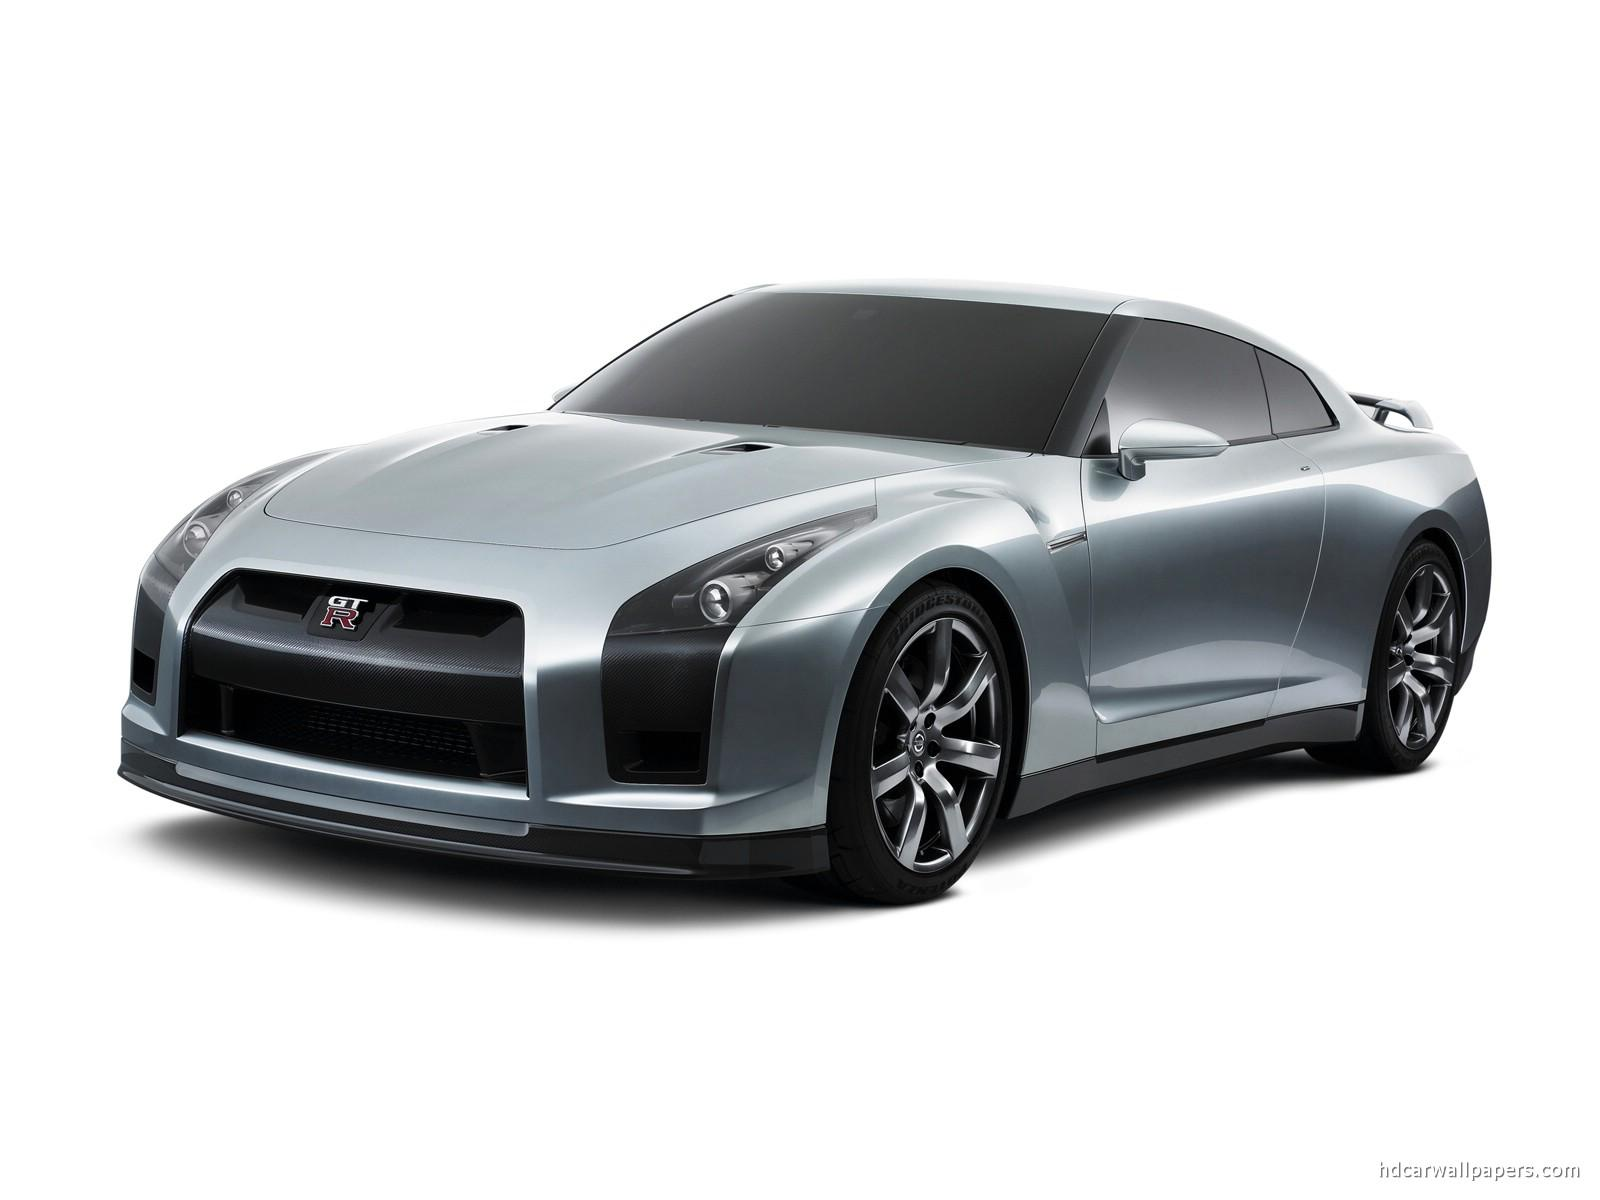 Nissan Gtr Proto Concept Hd Desktop Wallpaper Widescreen High